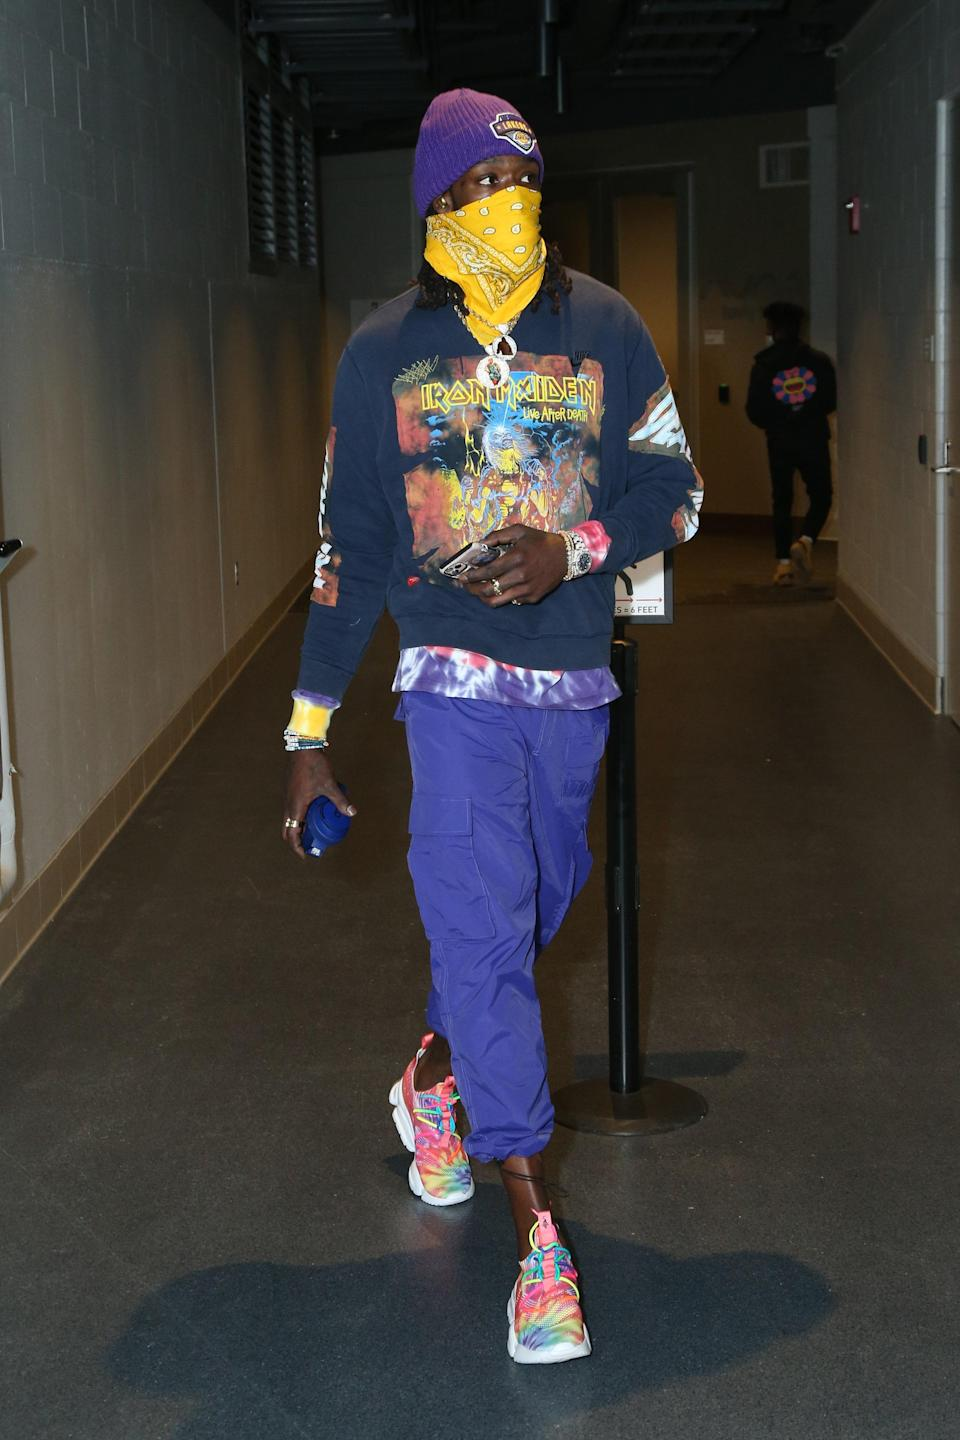 Montrezl Harrell of the Los Angeles Lakers arrives for a game against the Bucks in Milwaukee, January 21, 2021.